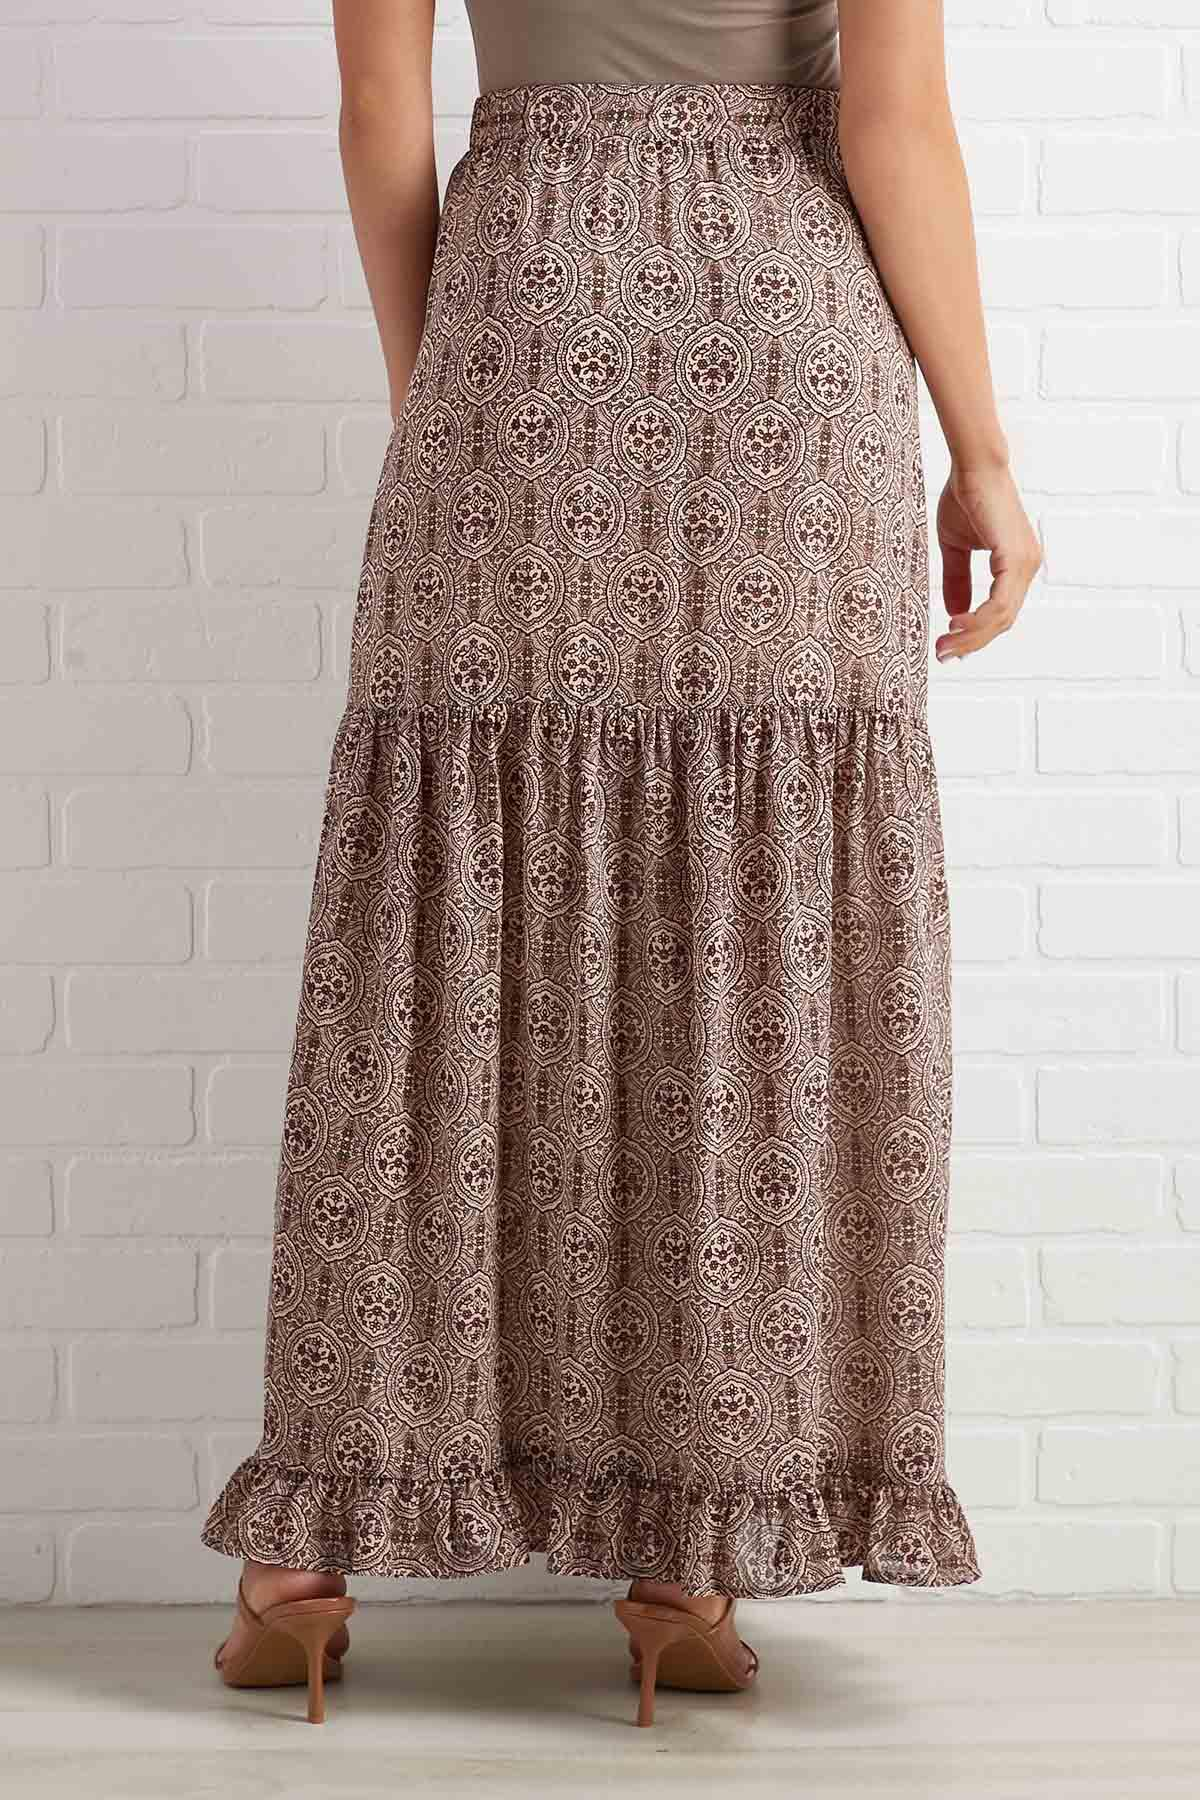 Coffee In Hand Skirt